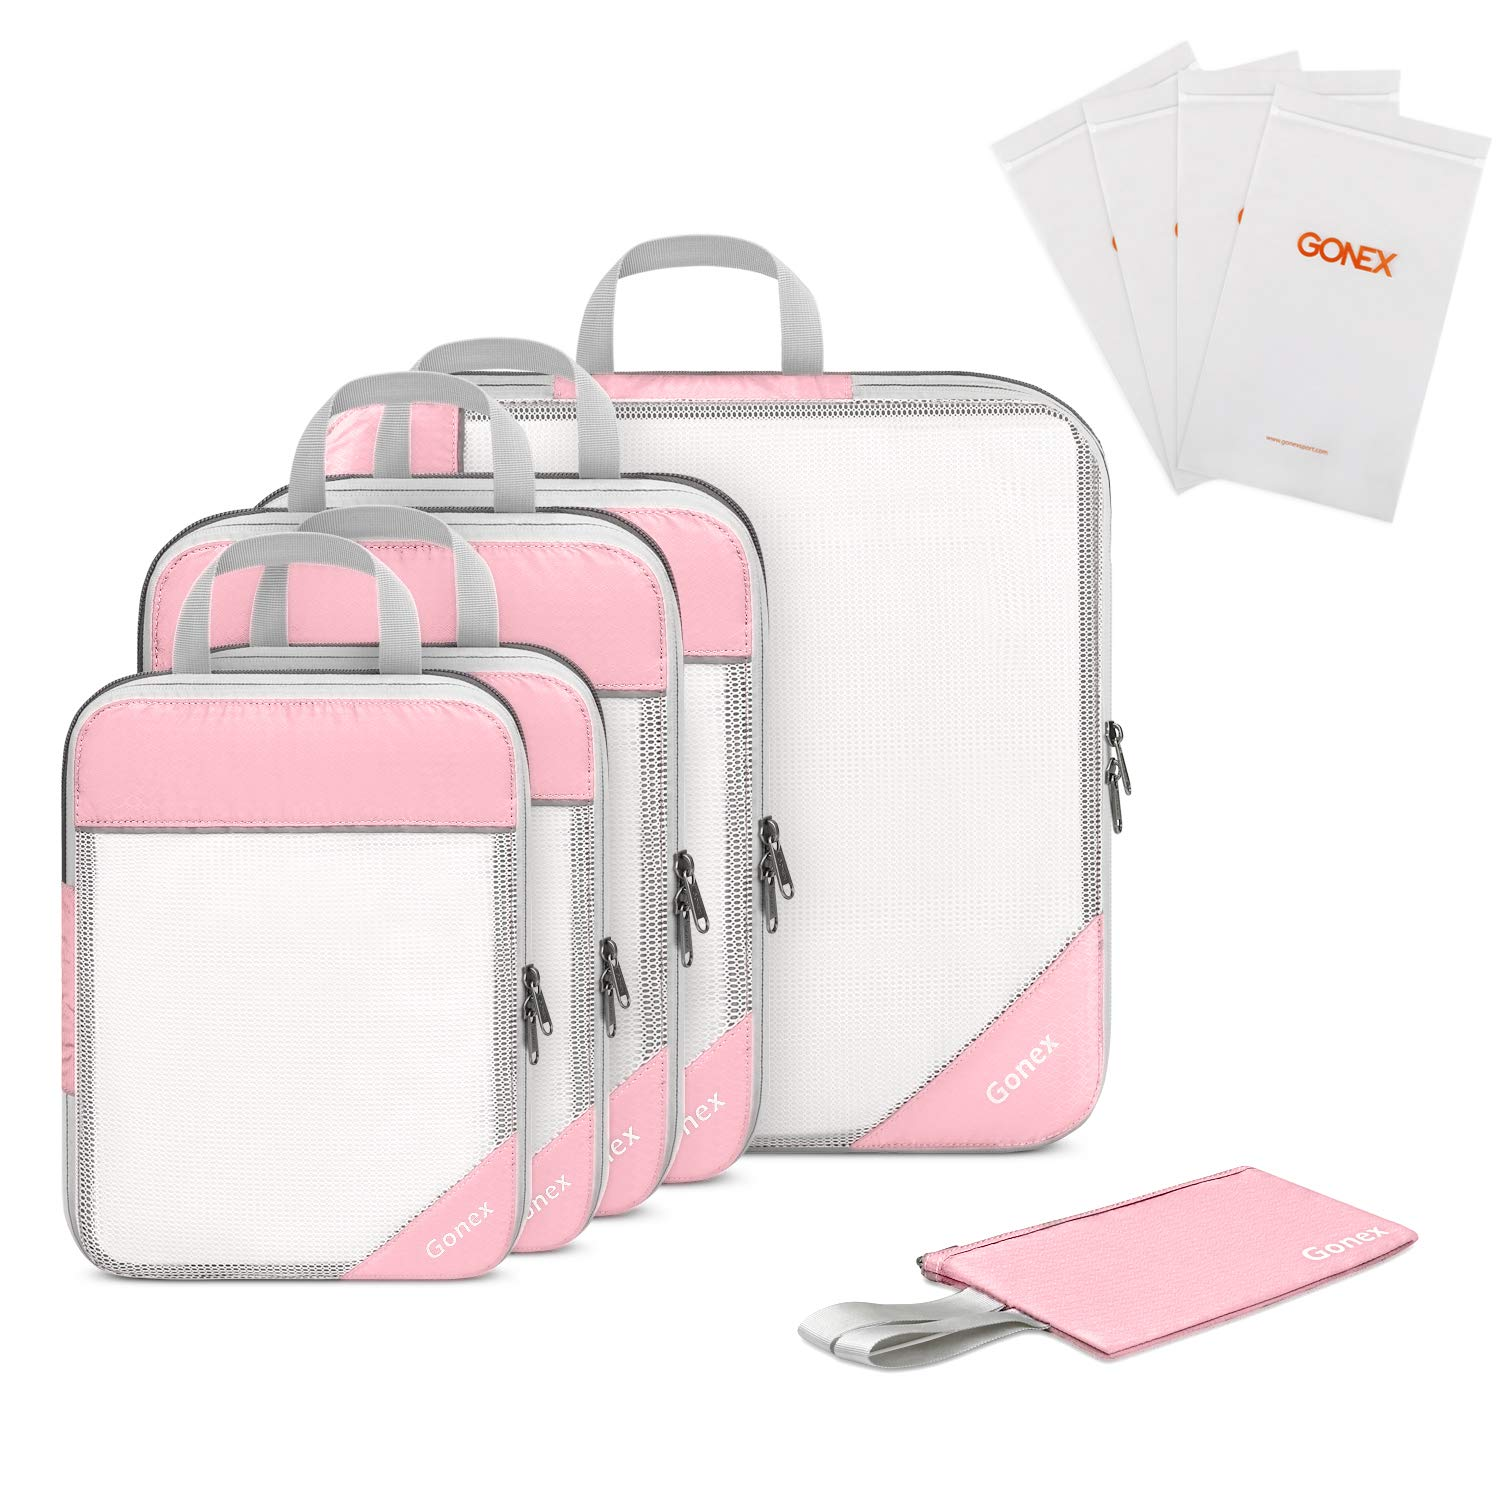 Gonex Compression Packing Cubes, Extensible Mesh Bags Organizers L+2M+2S with 4 Zipped Plastic Bags and Wallet Pink by Gonex